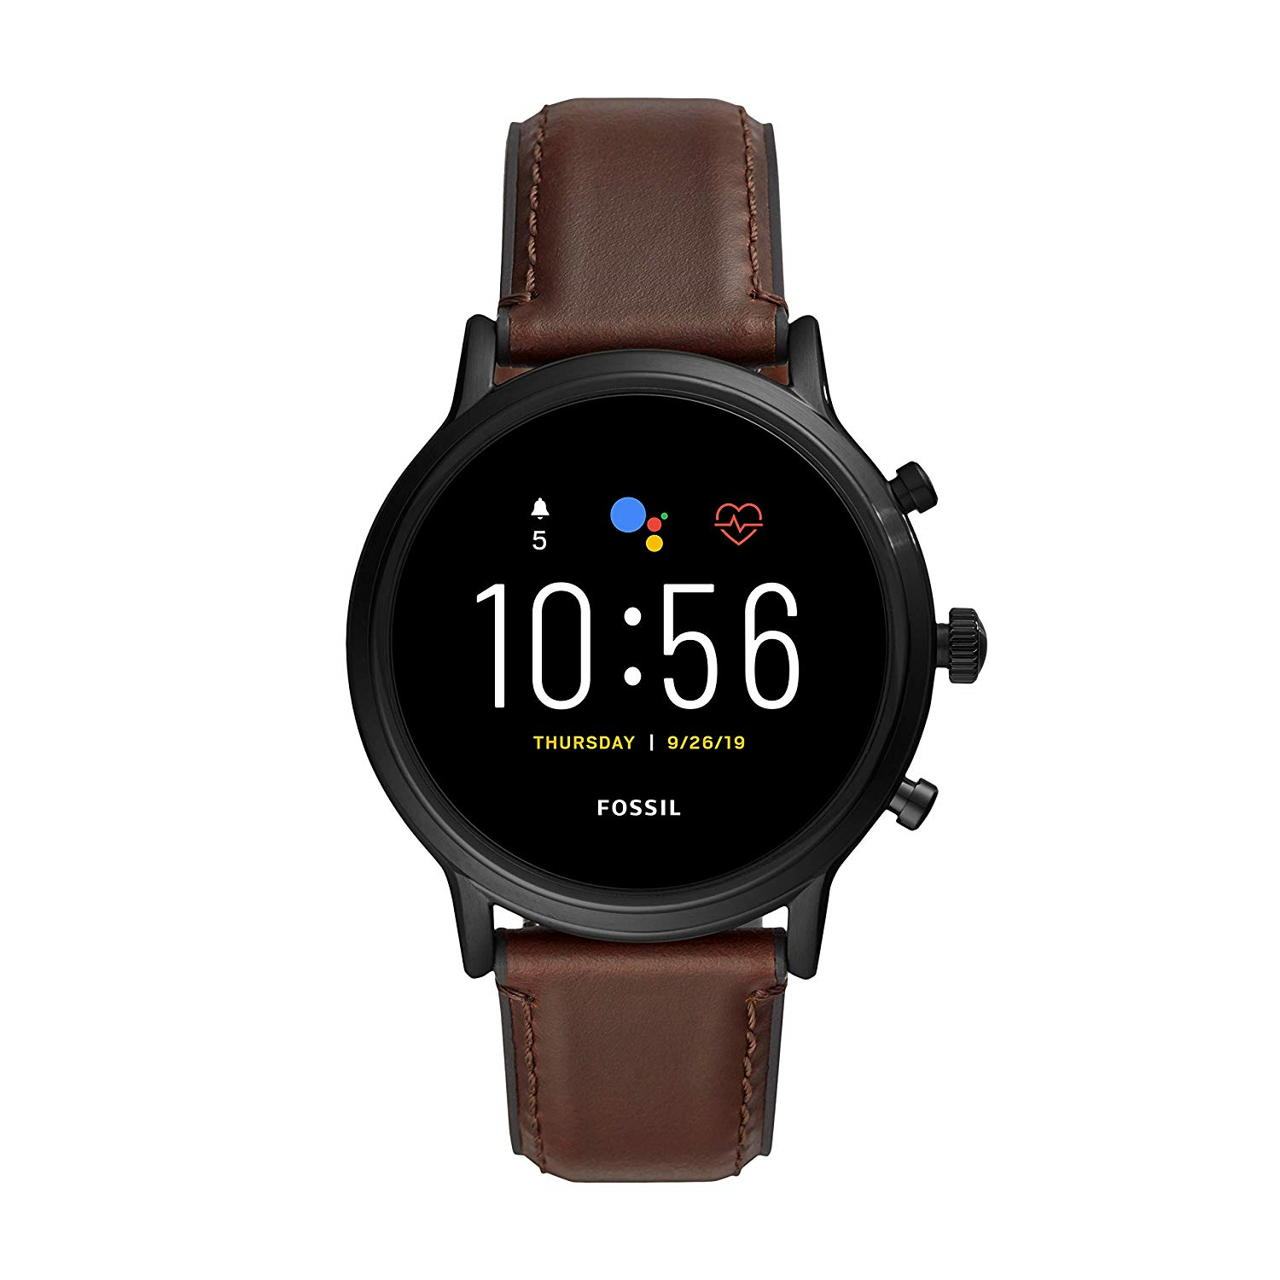 Fossil Gen 5 Carlyle Touchscreen Smartwatch with Speaker, Heart Rate, GPS and Smartphone Notifications - FTW4026